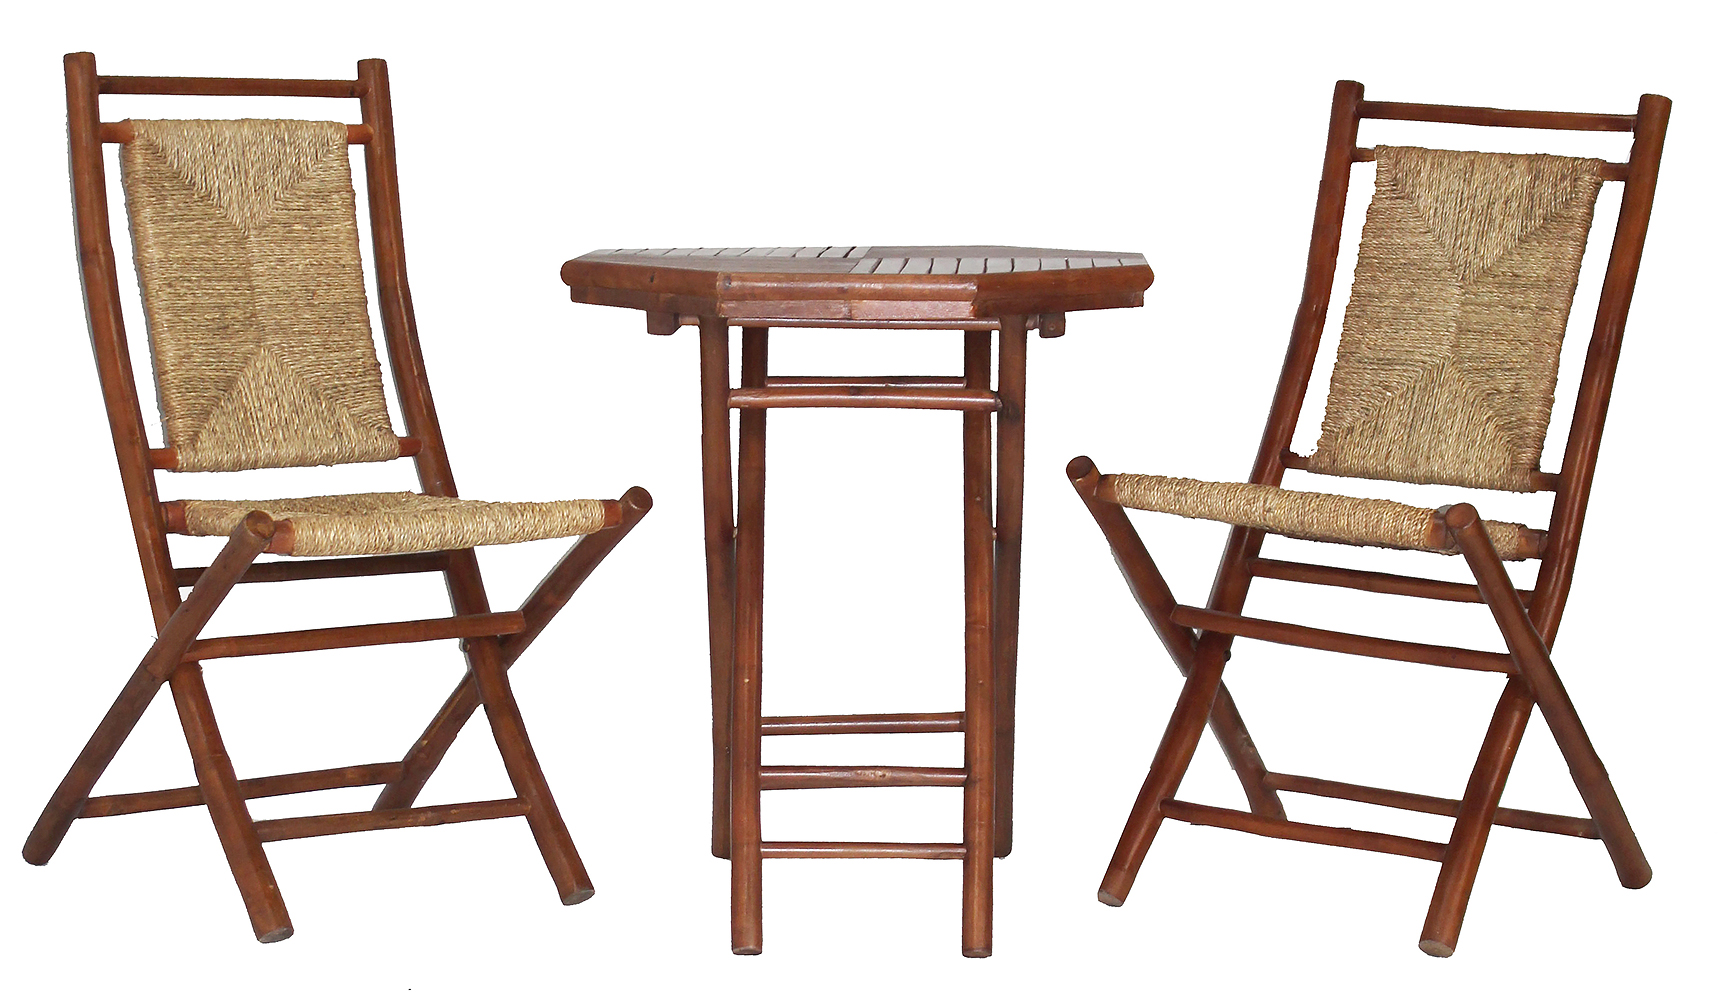 36' Brown Sea Grass Weave set of 2 Chairs and a Table